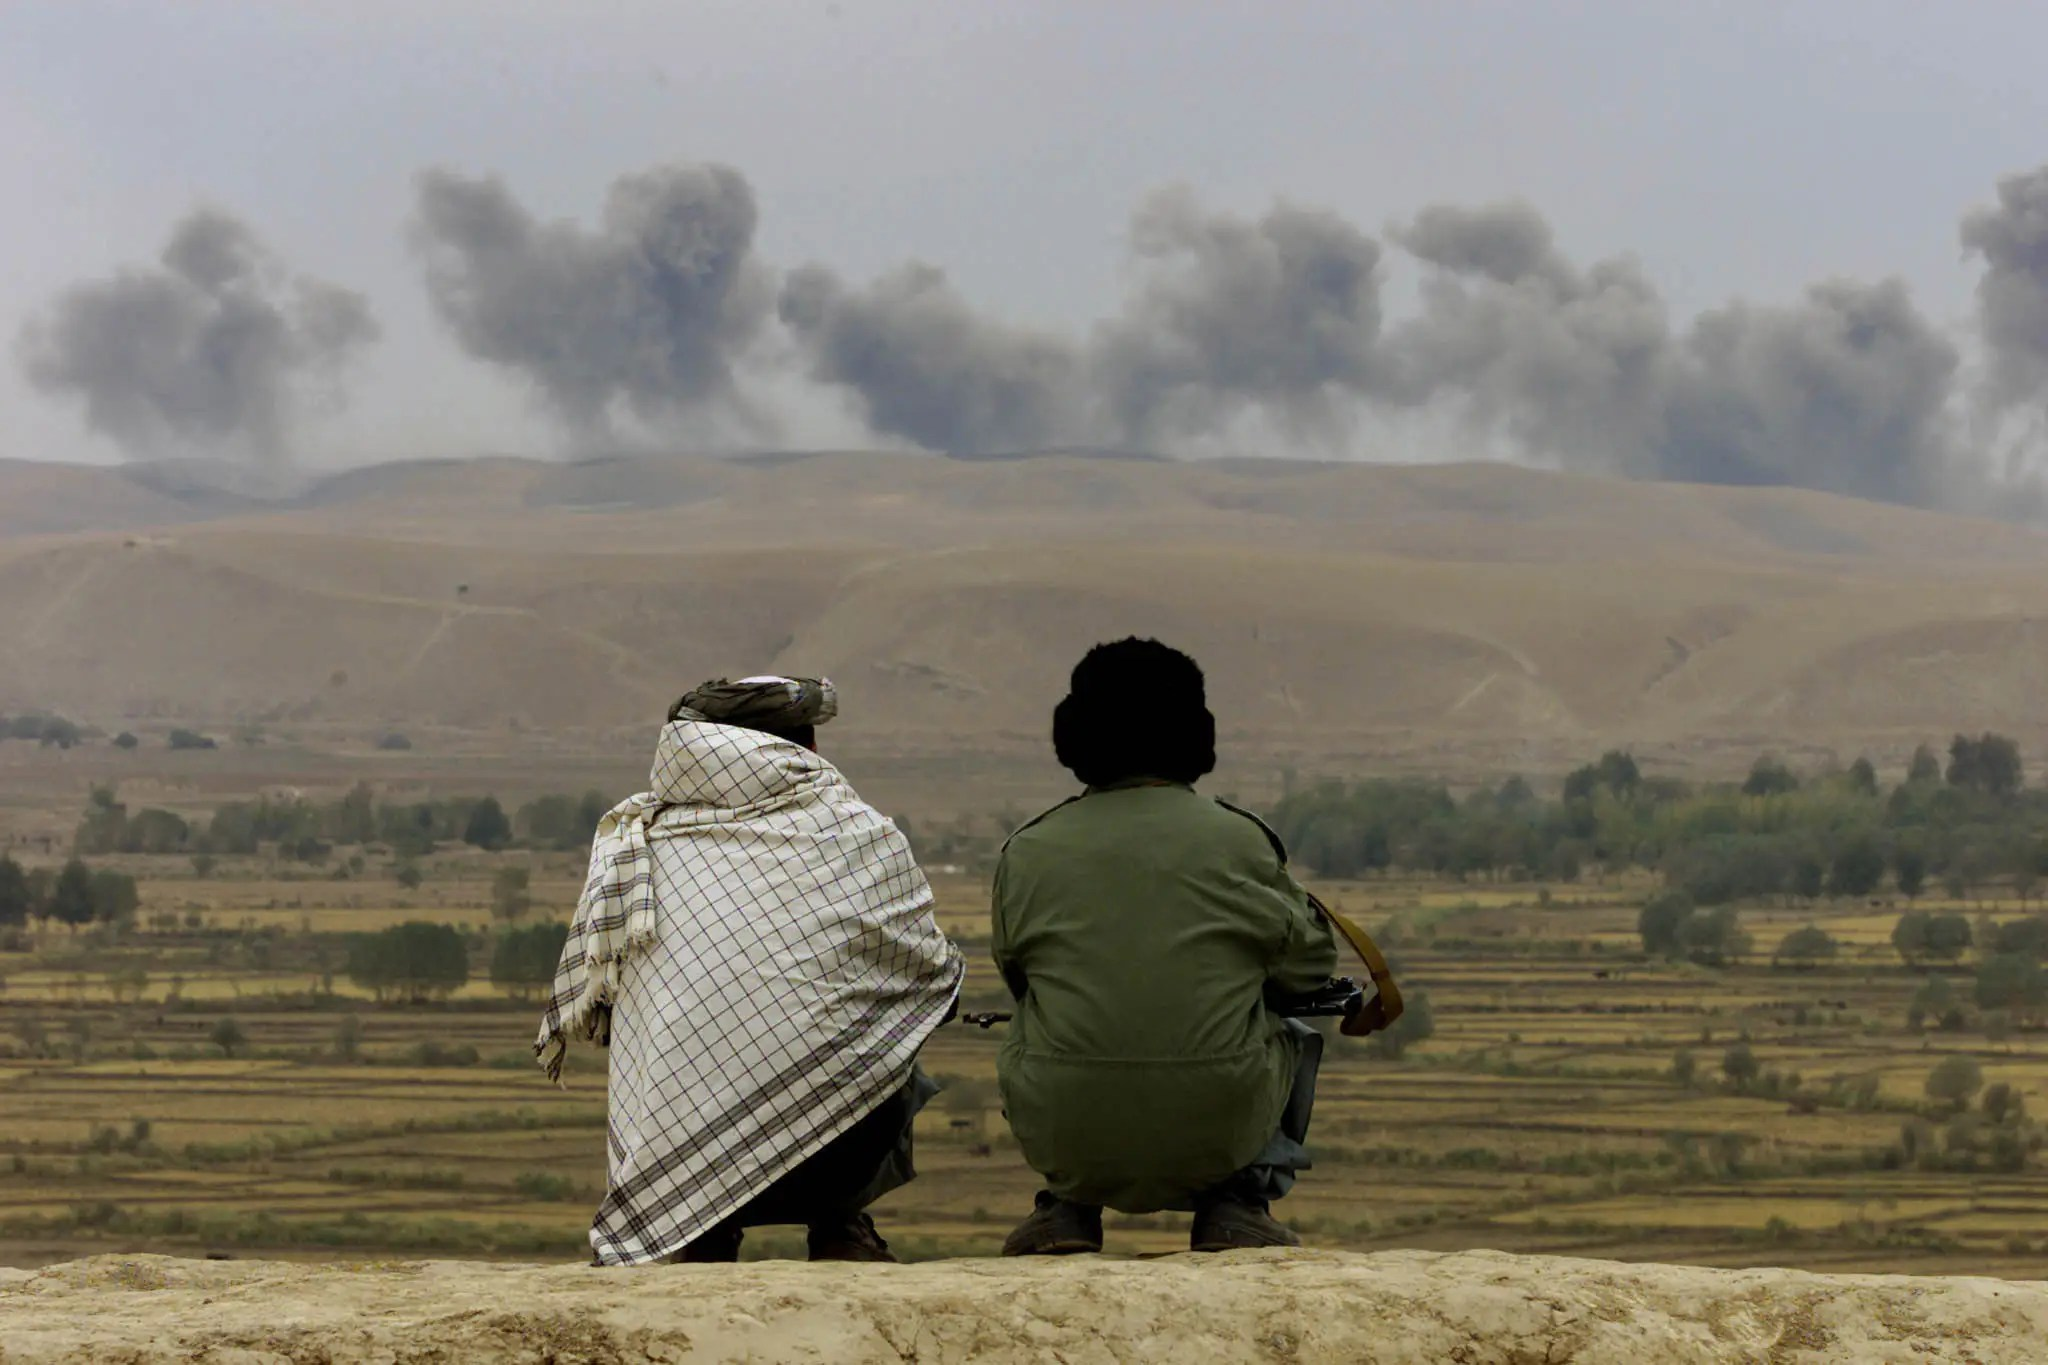 Two Northern Alliance soldiers watch as the dust and smoke rises after explosions in Taliban positions on Kalakata hill, near the village of Ai-Khanum in northern Afghanistan, November 1, 2001.